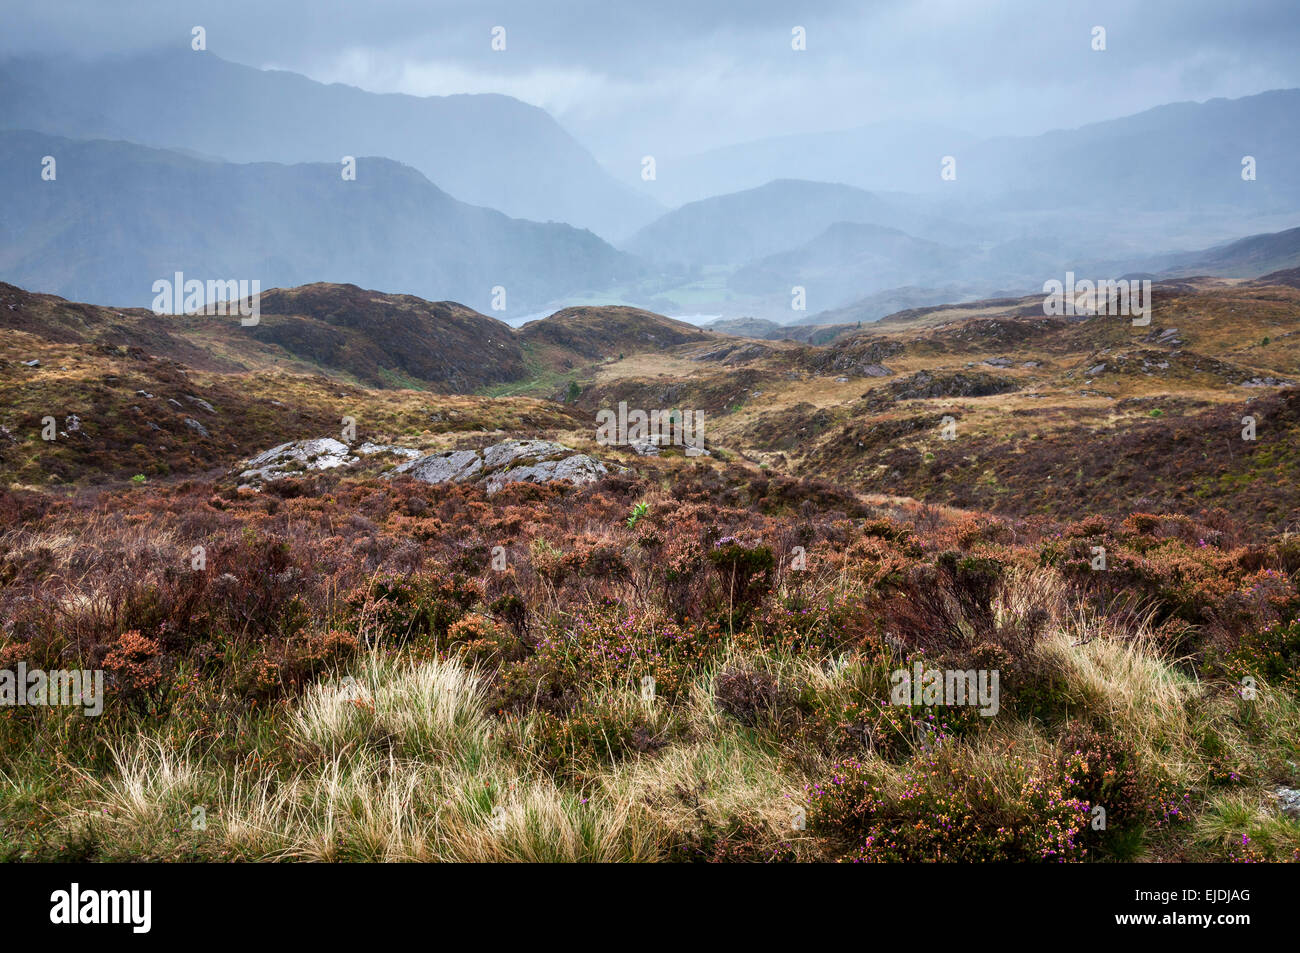 Dramatic rainy weather in Snowdonia. Rain falling on hills and mountains near Beddgelert. Stock Photo